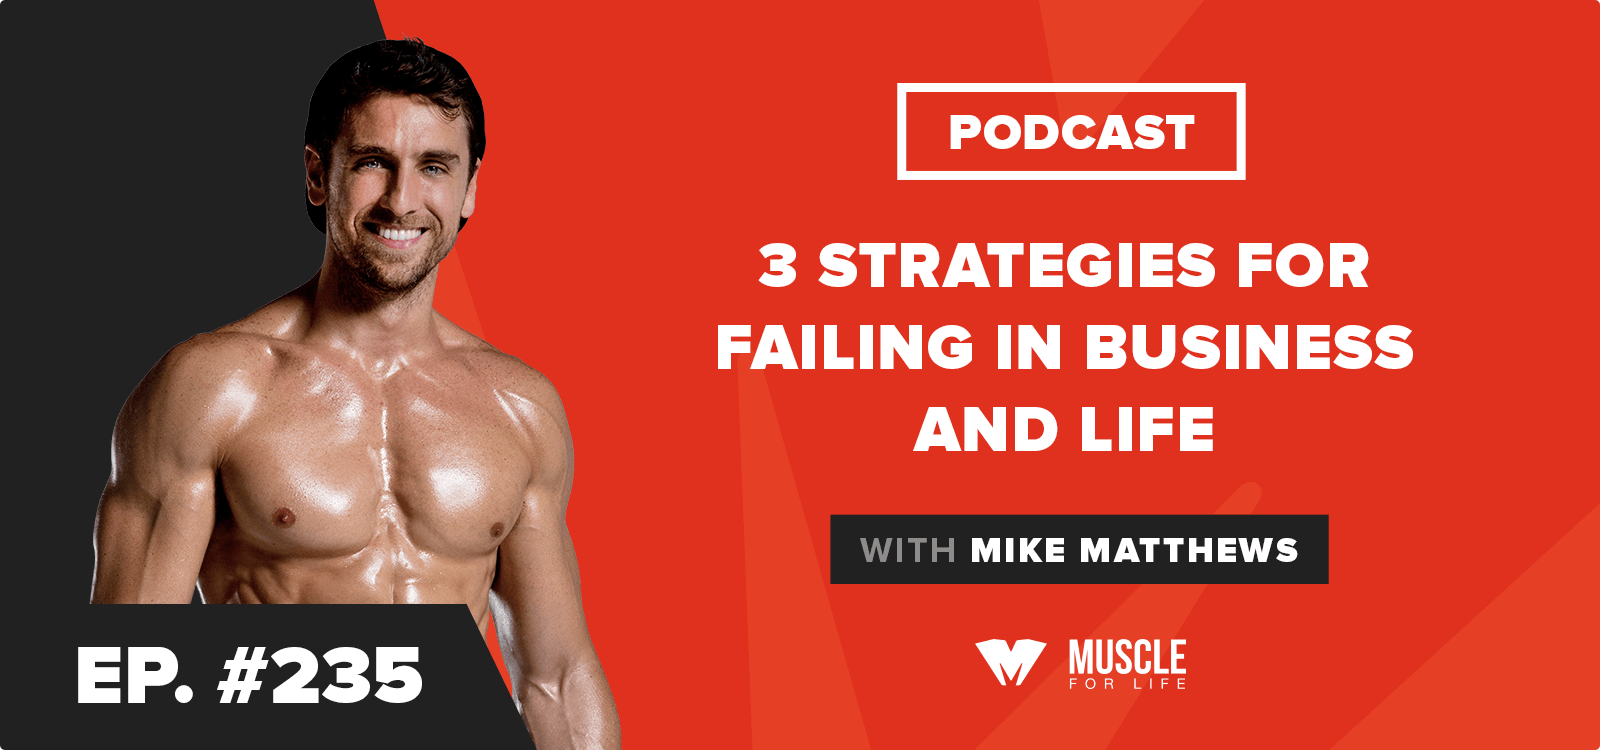 Motivation Monday: 3 Strategies for Failing in Business and Life